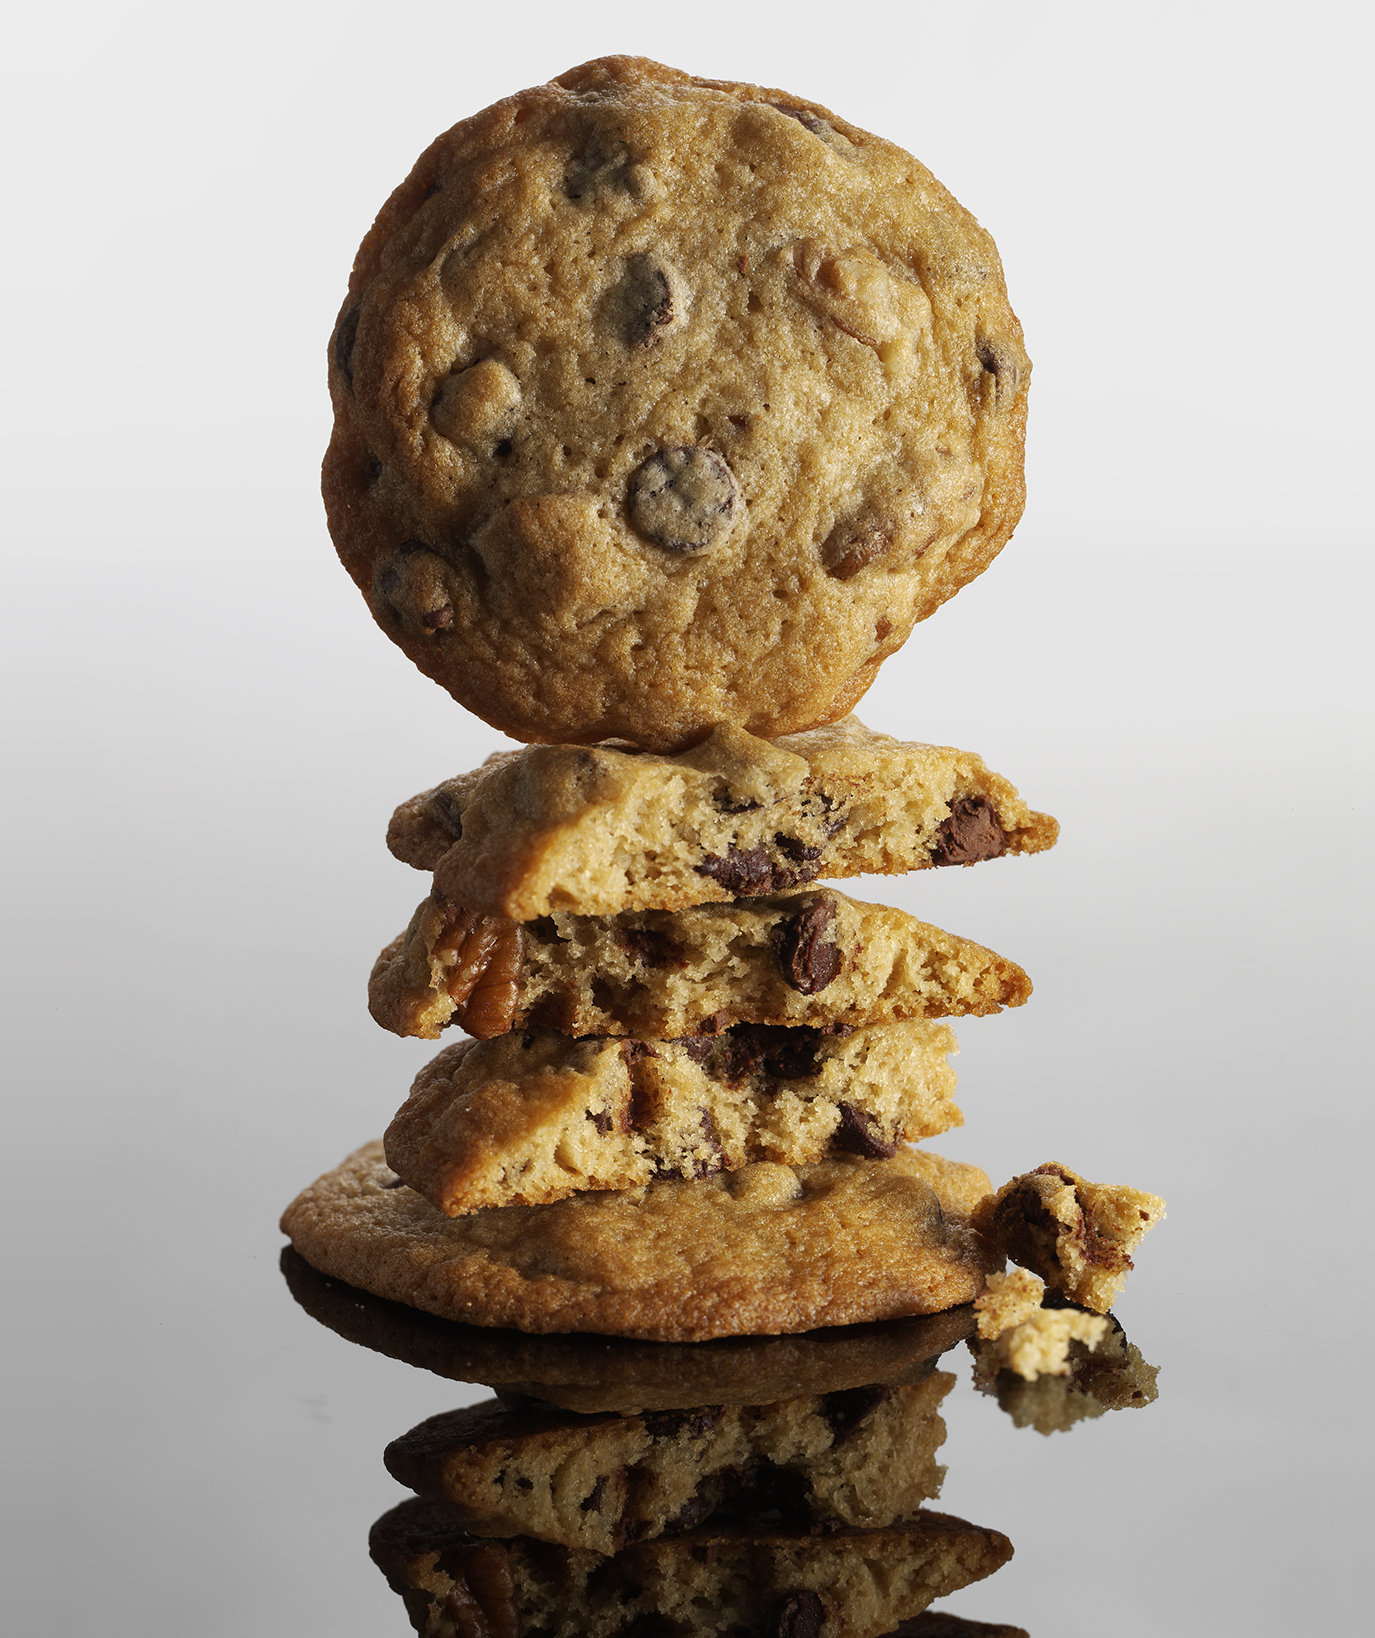 Exactly Where To Get Free Cookies On National Chocolate Chip Cookie Day